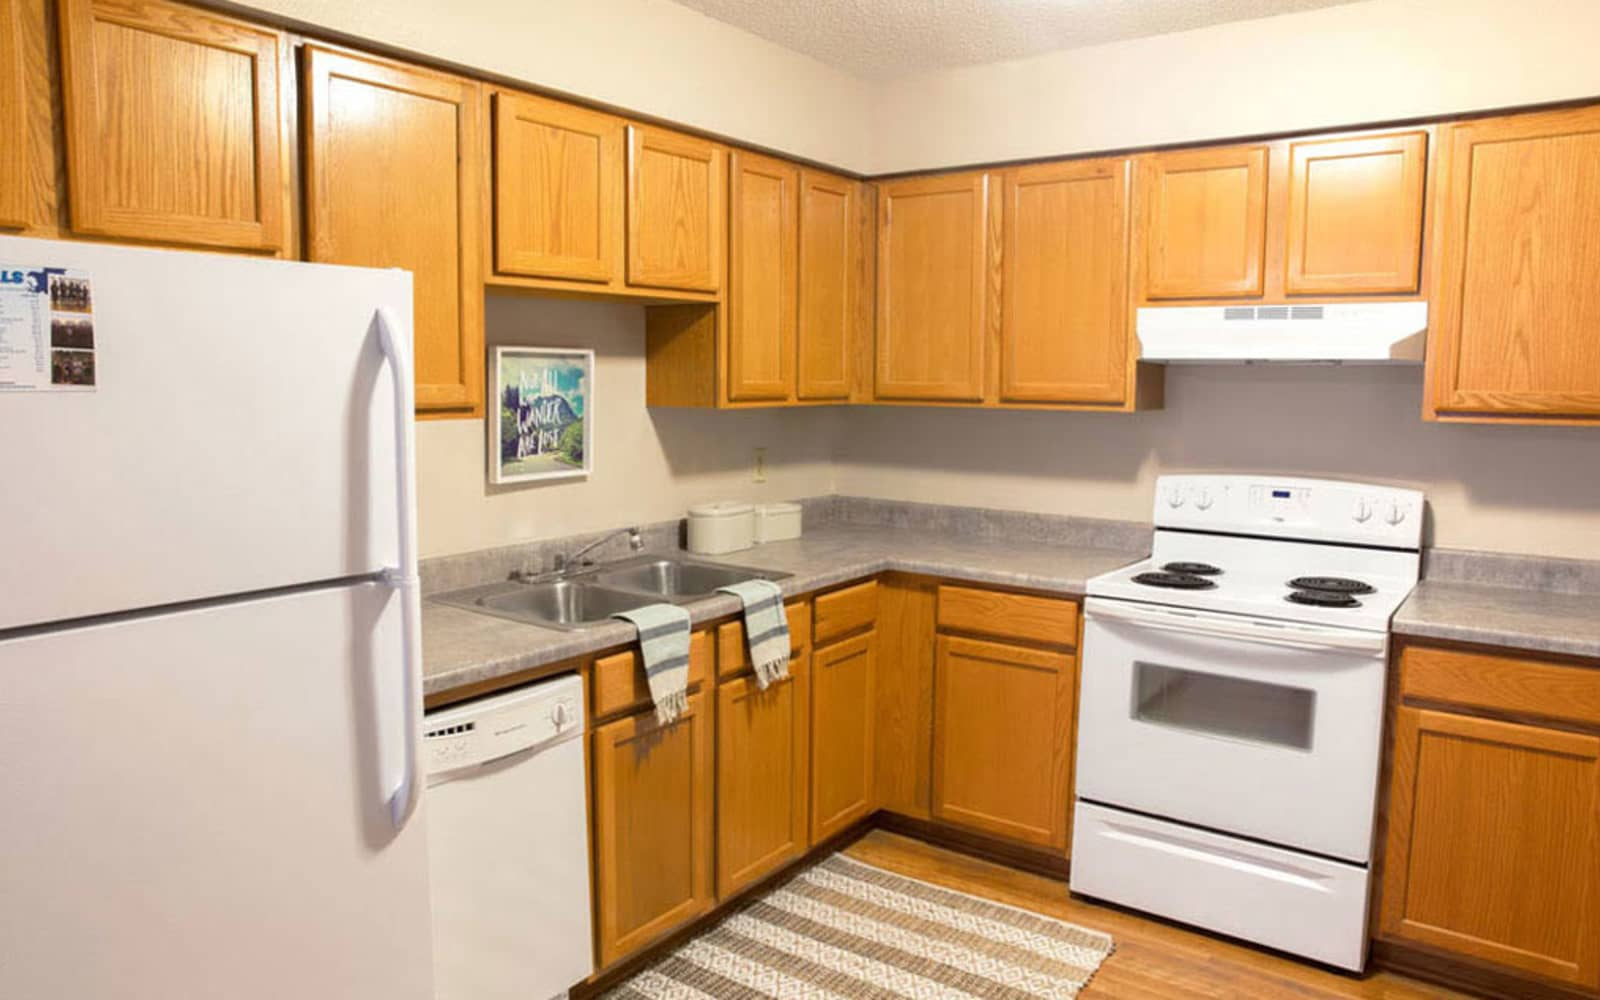 Apartment kitchen at Campus View & Kirkwood Court in Cedar Rapids, Iowa